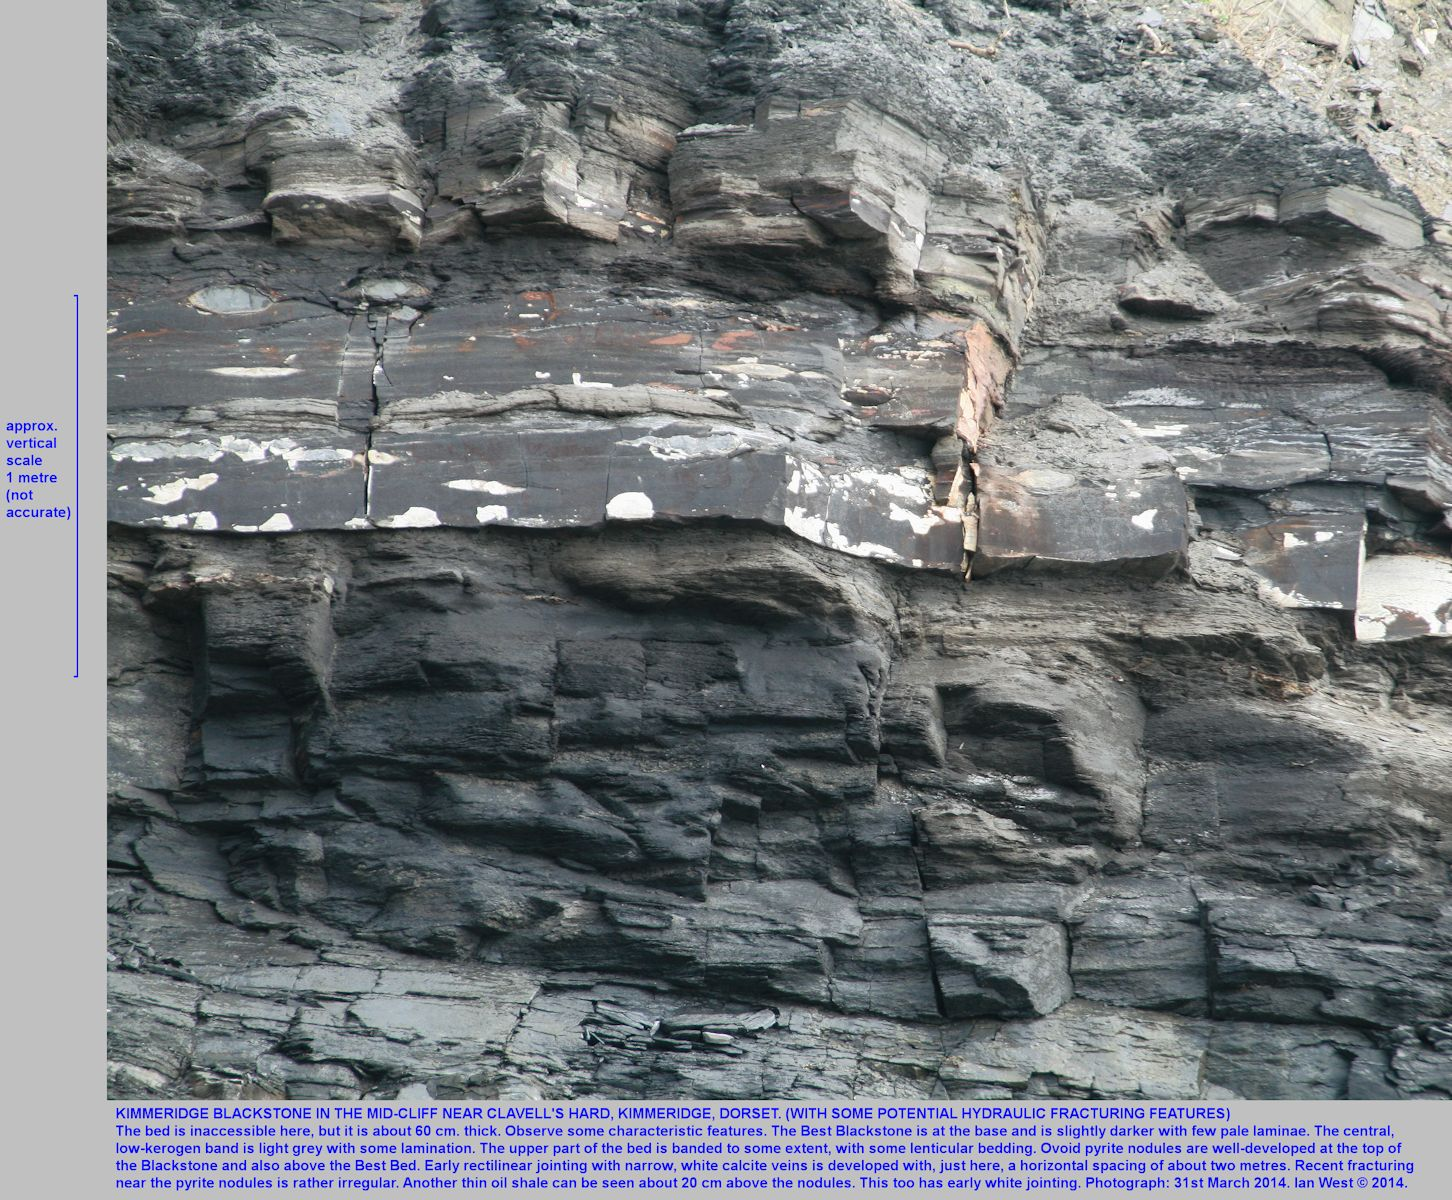 The Kimmeridge Blackstone or oil shale bed in the mid-cliff, near Clavell's Hard, Kimmeridge, Dorset, showing fracture pattern and possible hydraulic fracturing potential